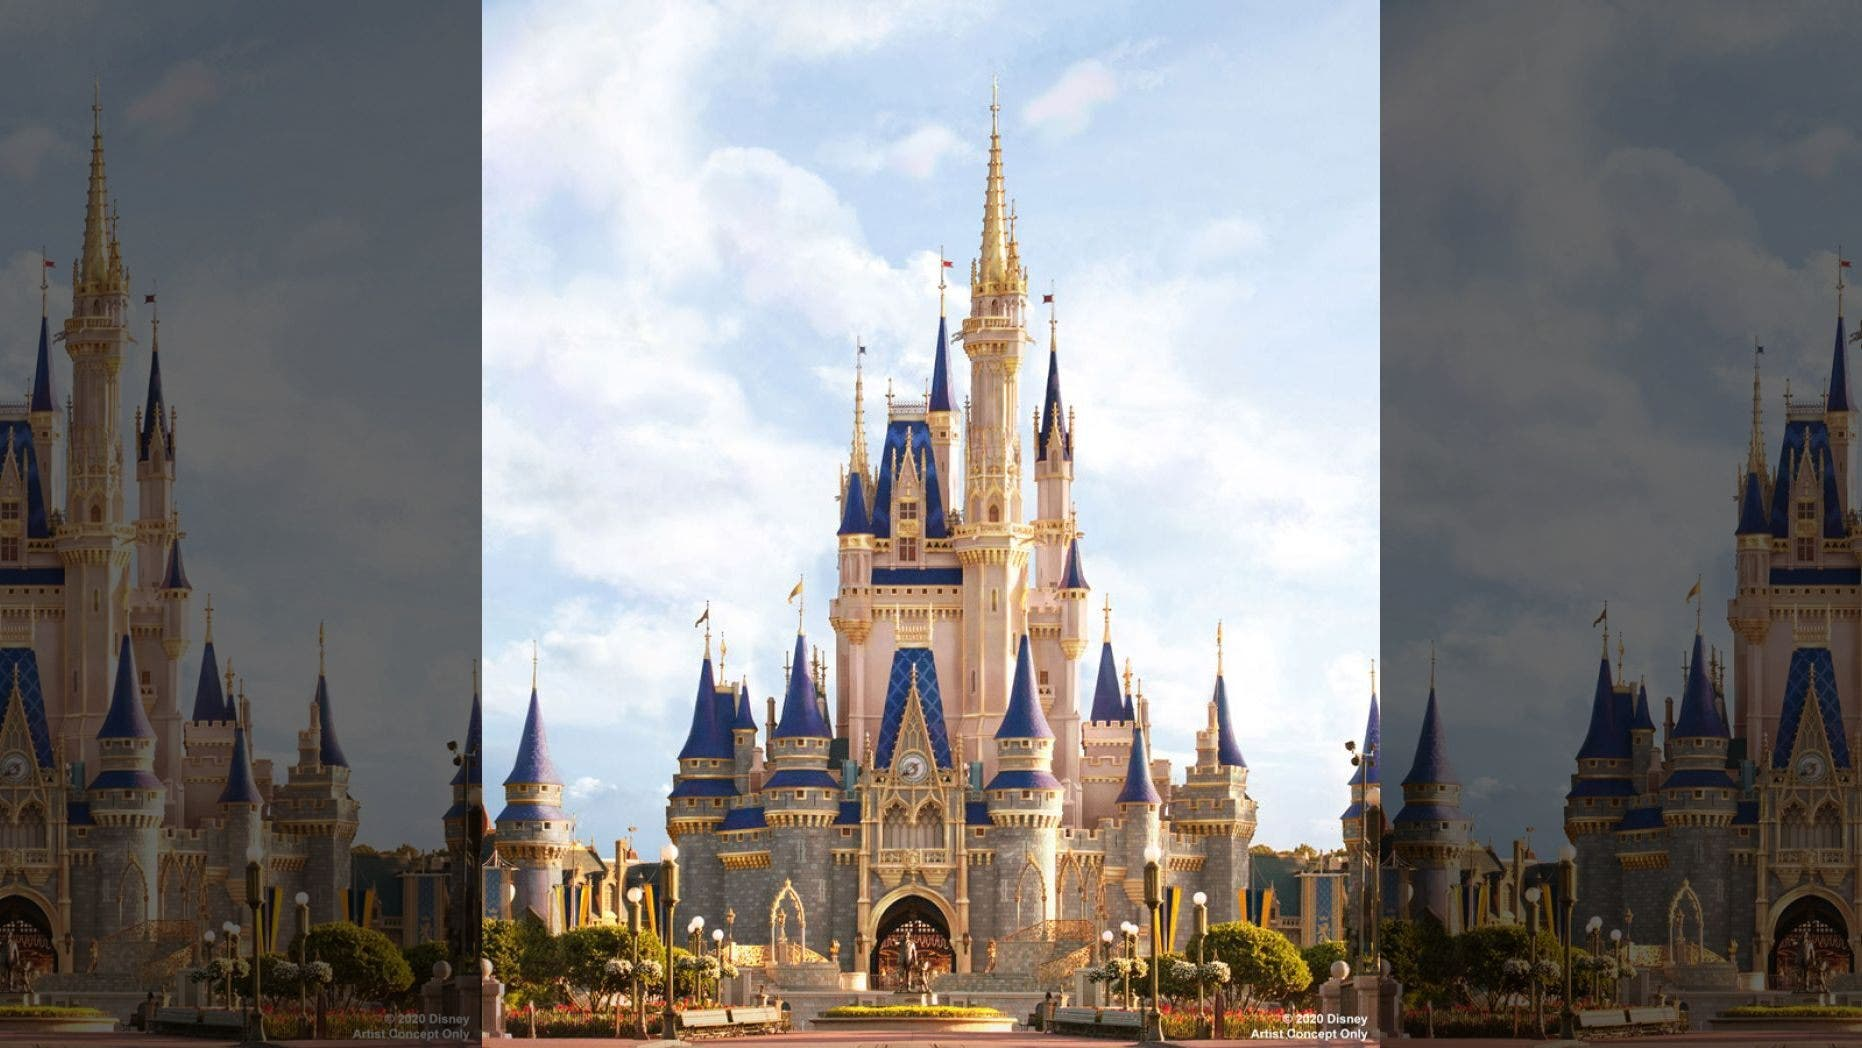 Disney World's 'Cinderella Castle' getting even more magical